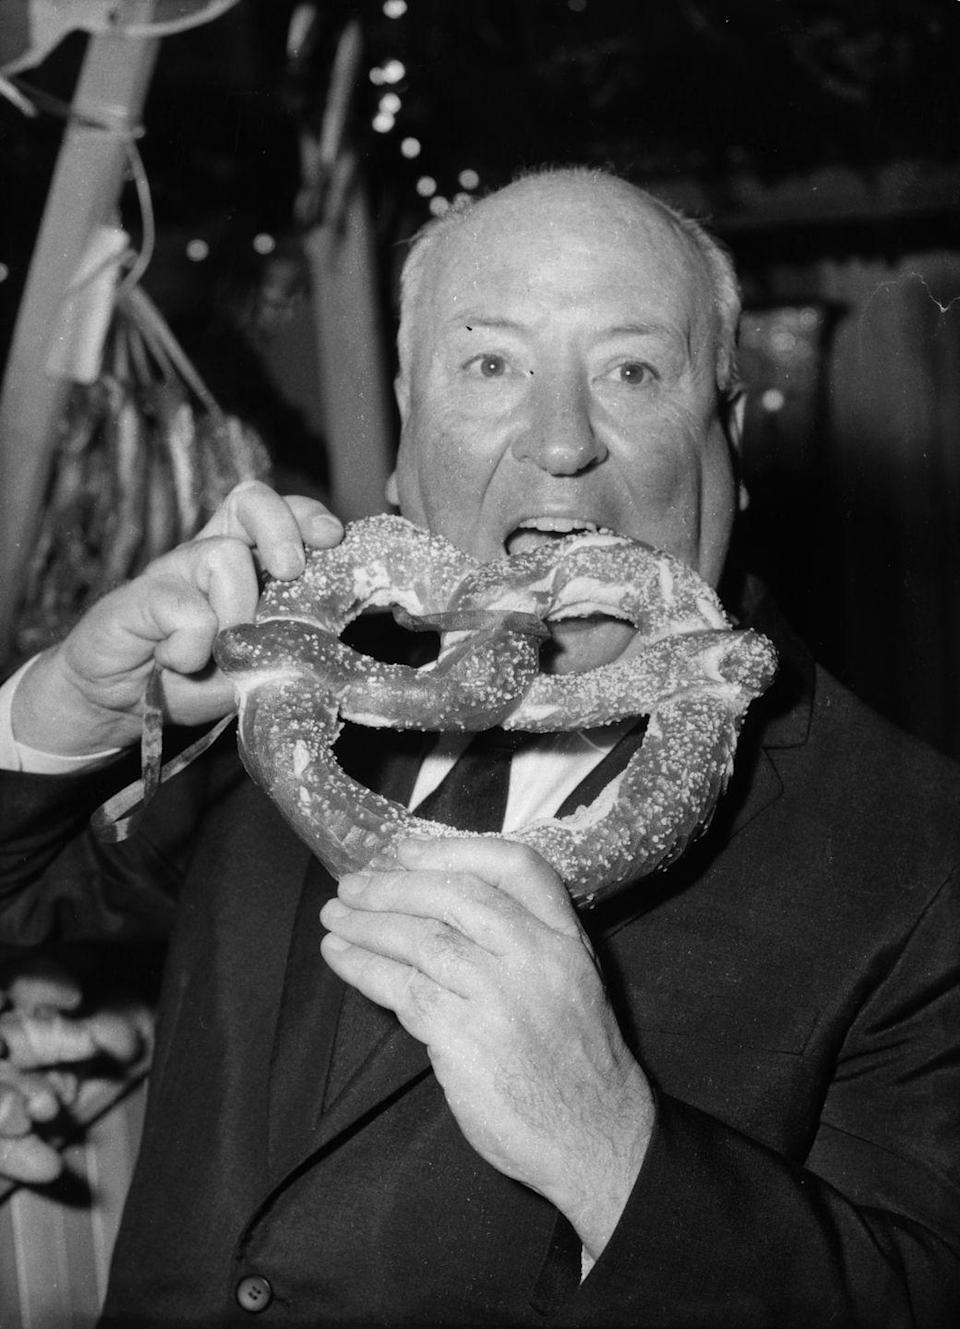 <p><em>Psycho</em> director Alfred Hitchcock enjoys a pretzel at the film's premiere on September 28, 1960. The horror/thriller is based on real-life serial killer Ed Gein, who also served as the inspiration for <em>The Texas Chainsaw Massacre</em> and <em>The Silence of the Lambs</em>.</p>